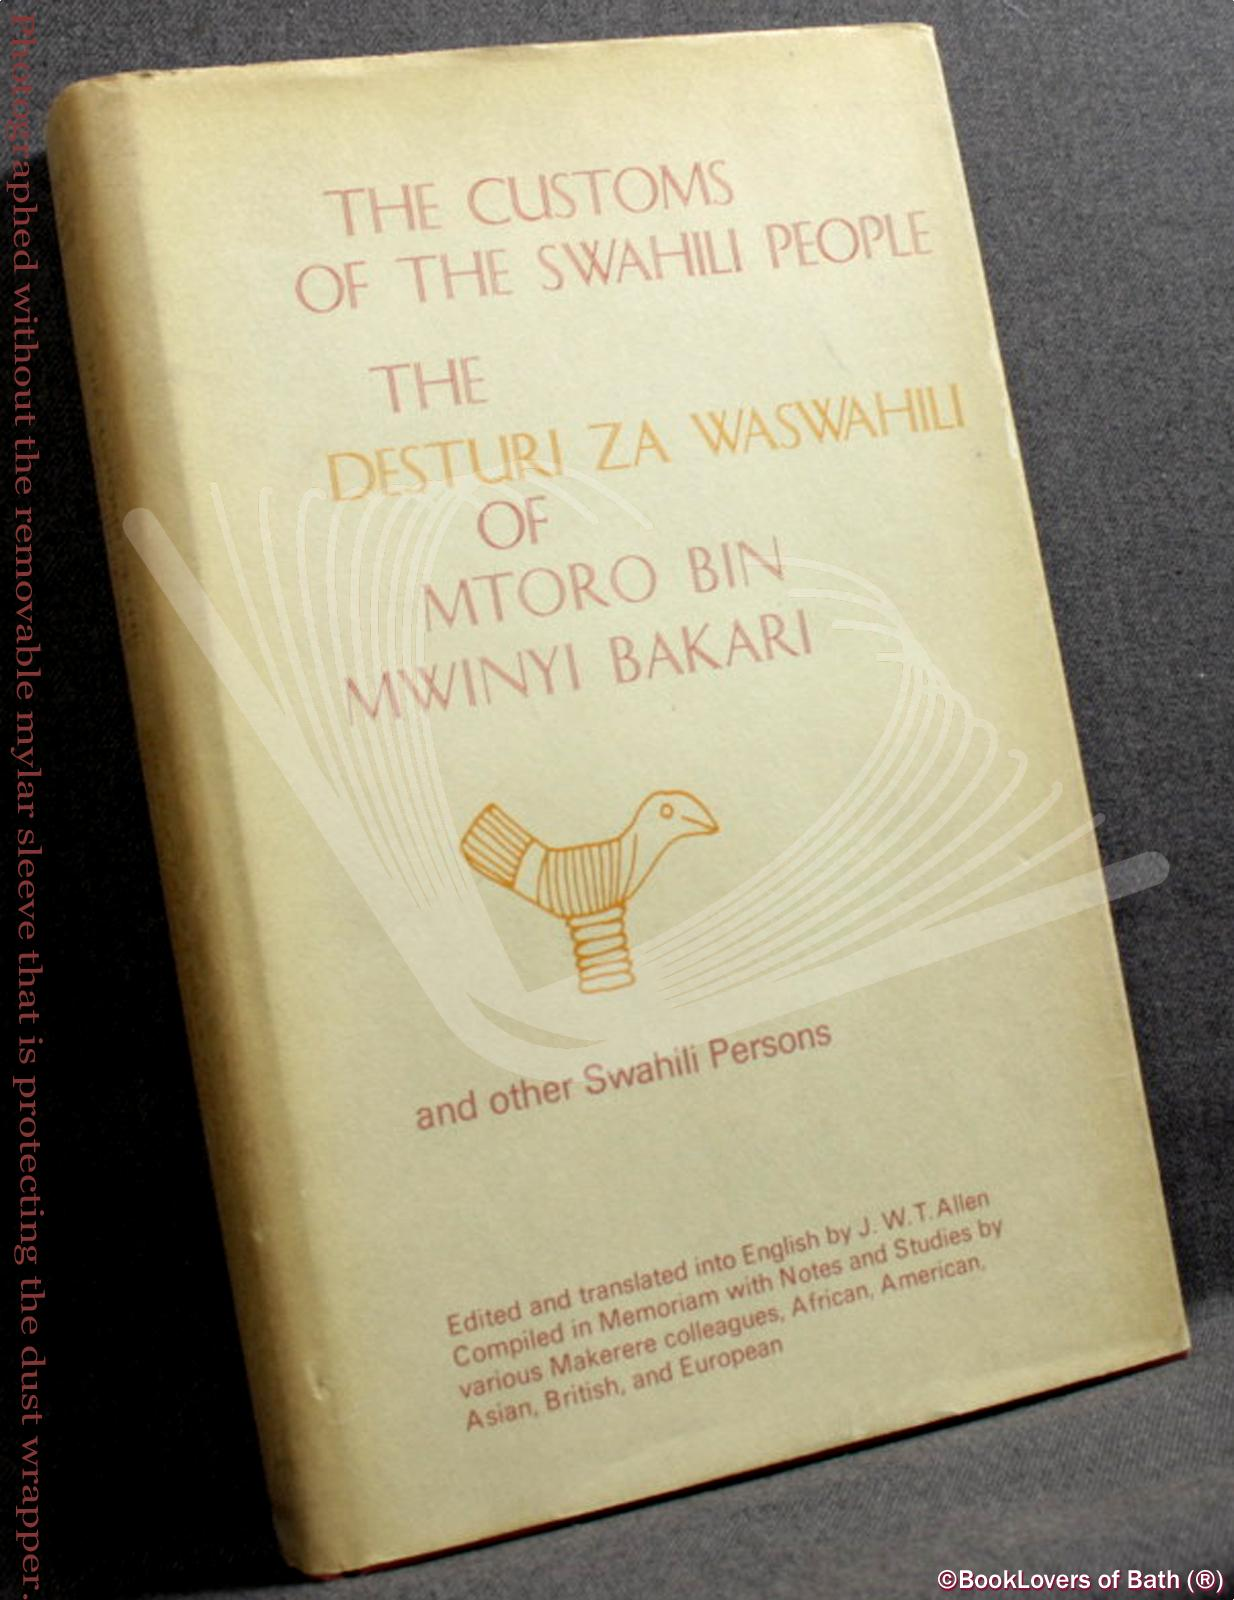 The Customs of the Swahili People: The Desturi Za Waswahili of Mtoro Bin Mwinyi Bakari and Other Swahili Persons Compiled in Memoriam with Notes and Studies by Various Makerere Colleagues, African, American, Asian, British and European - J. W. T. Allen